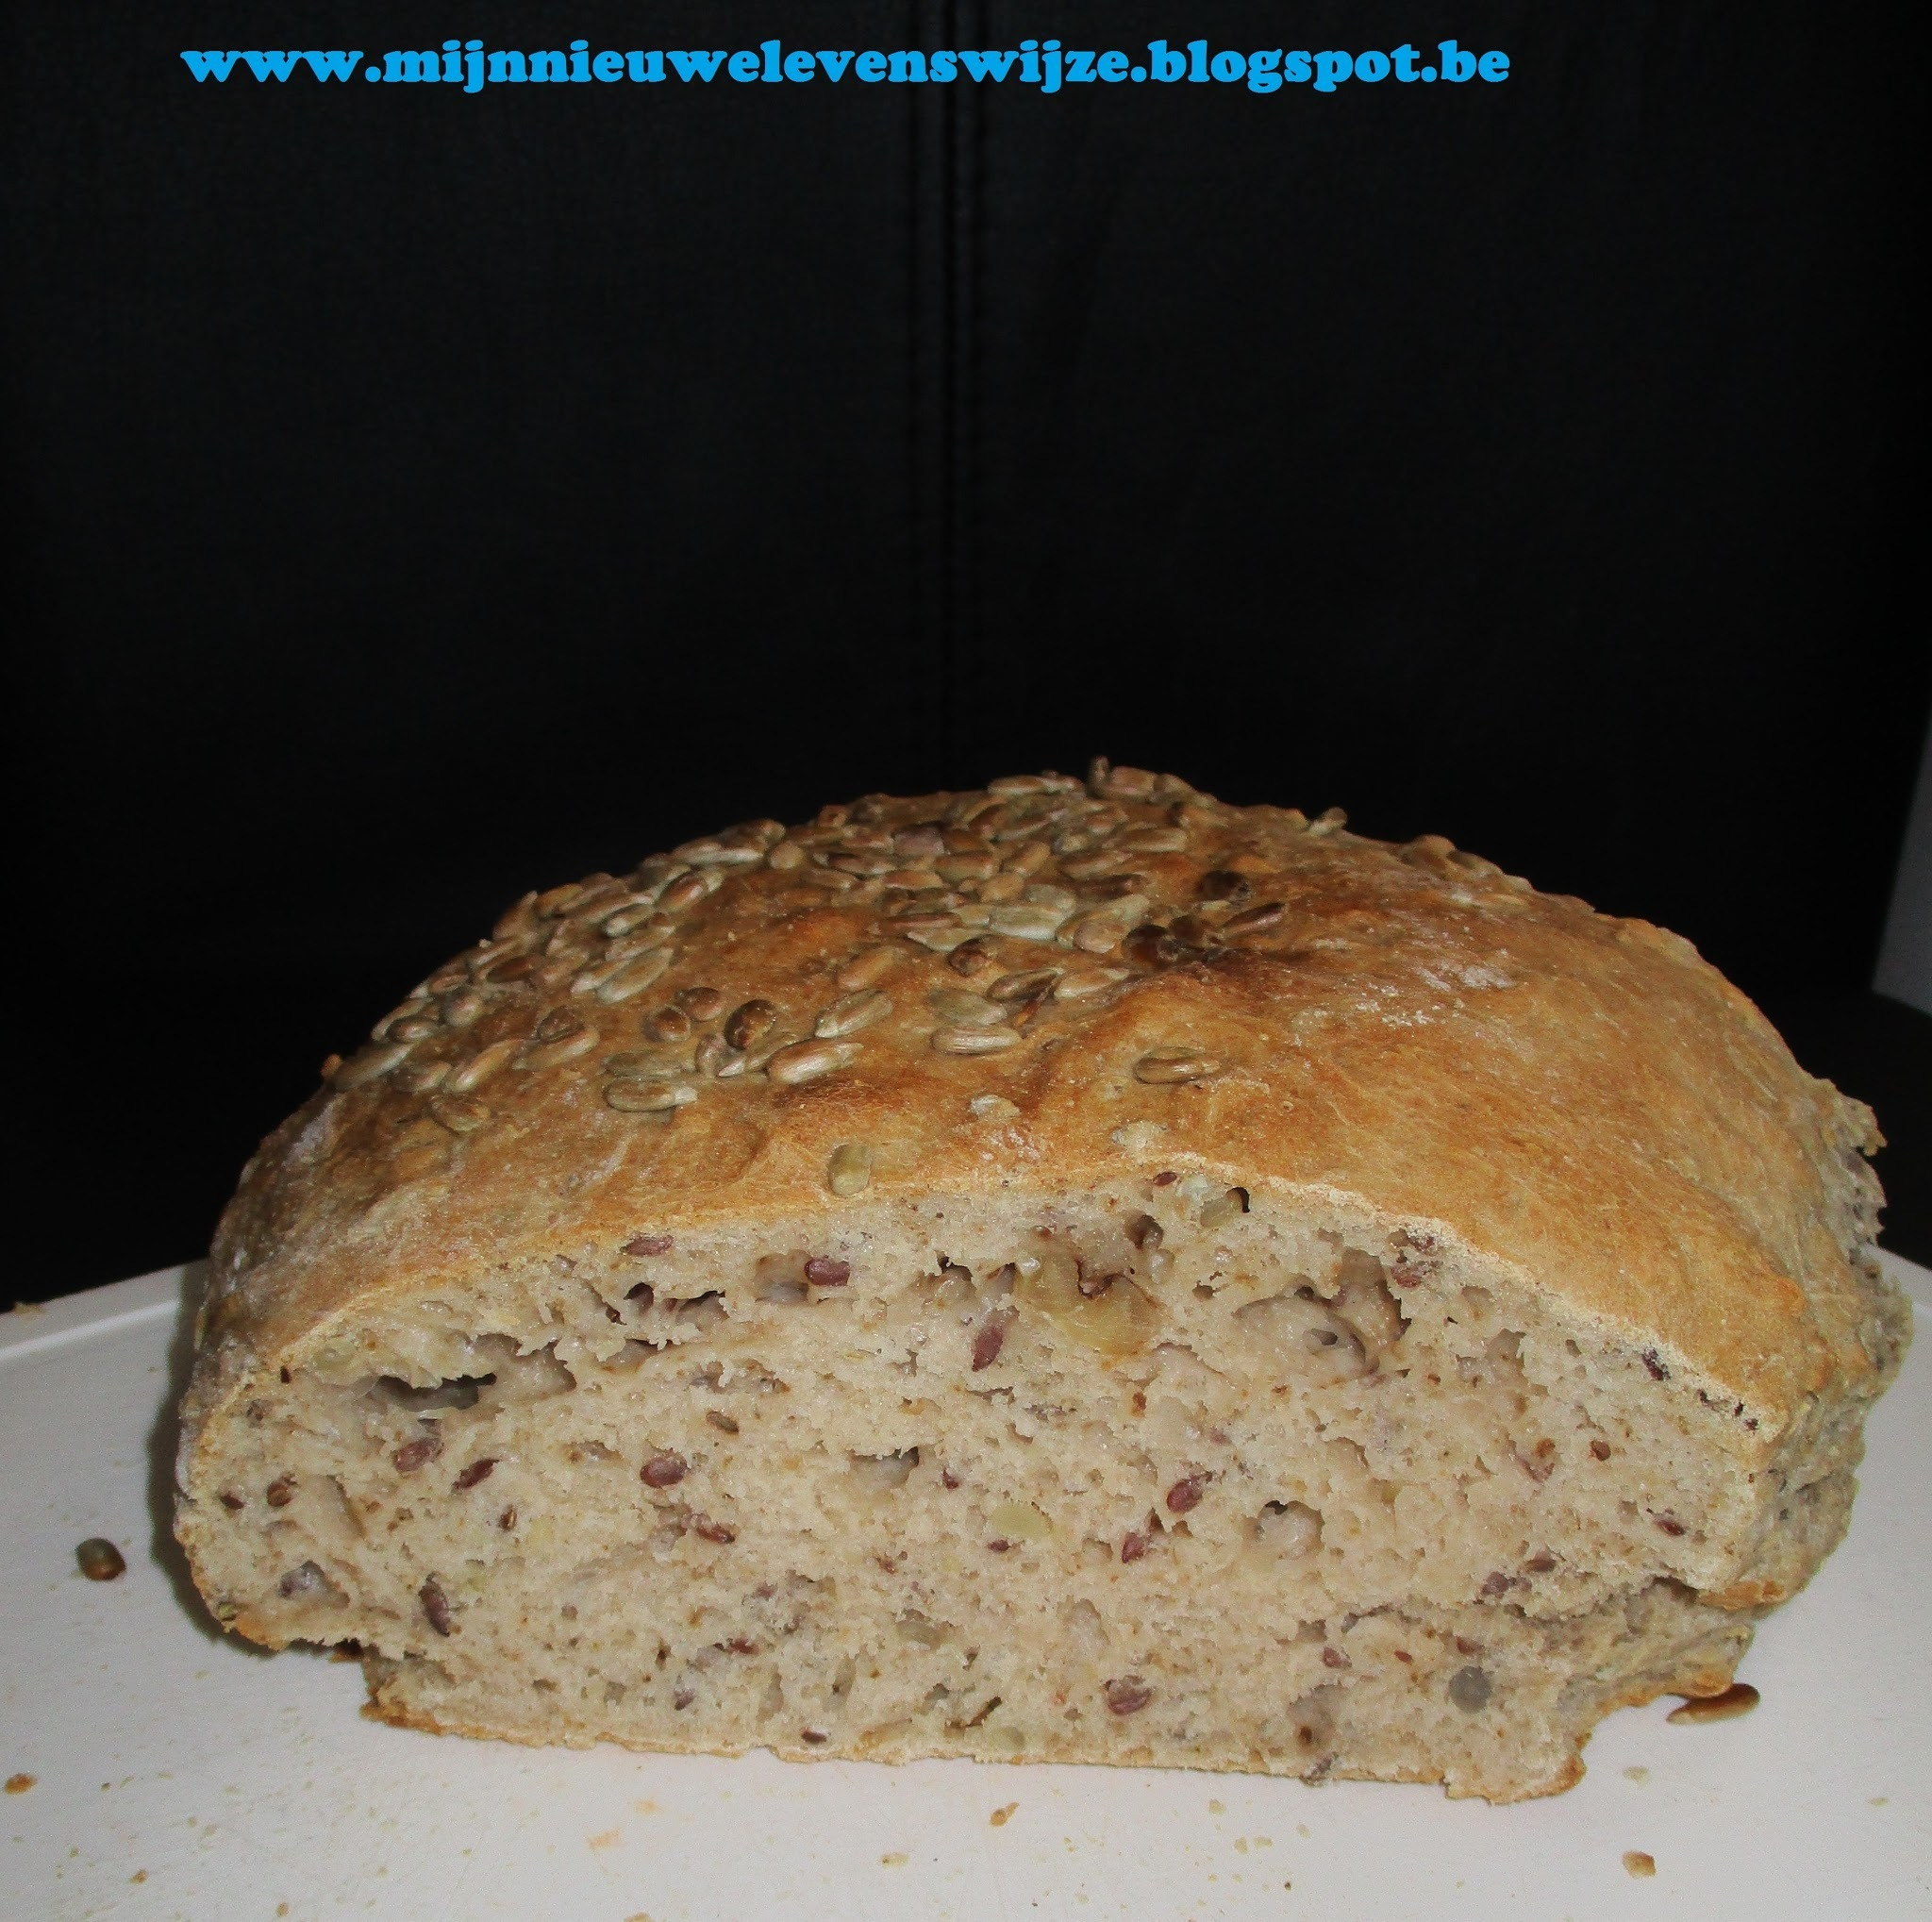 Brood met walnoten